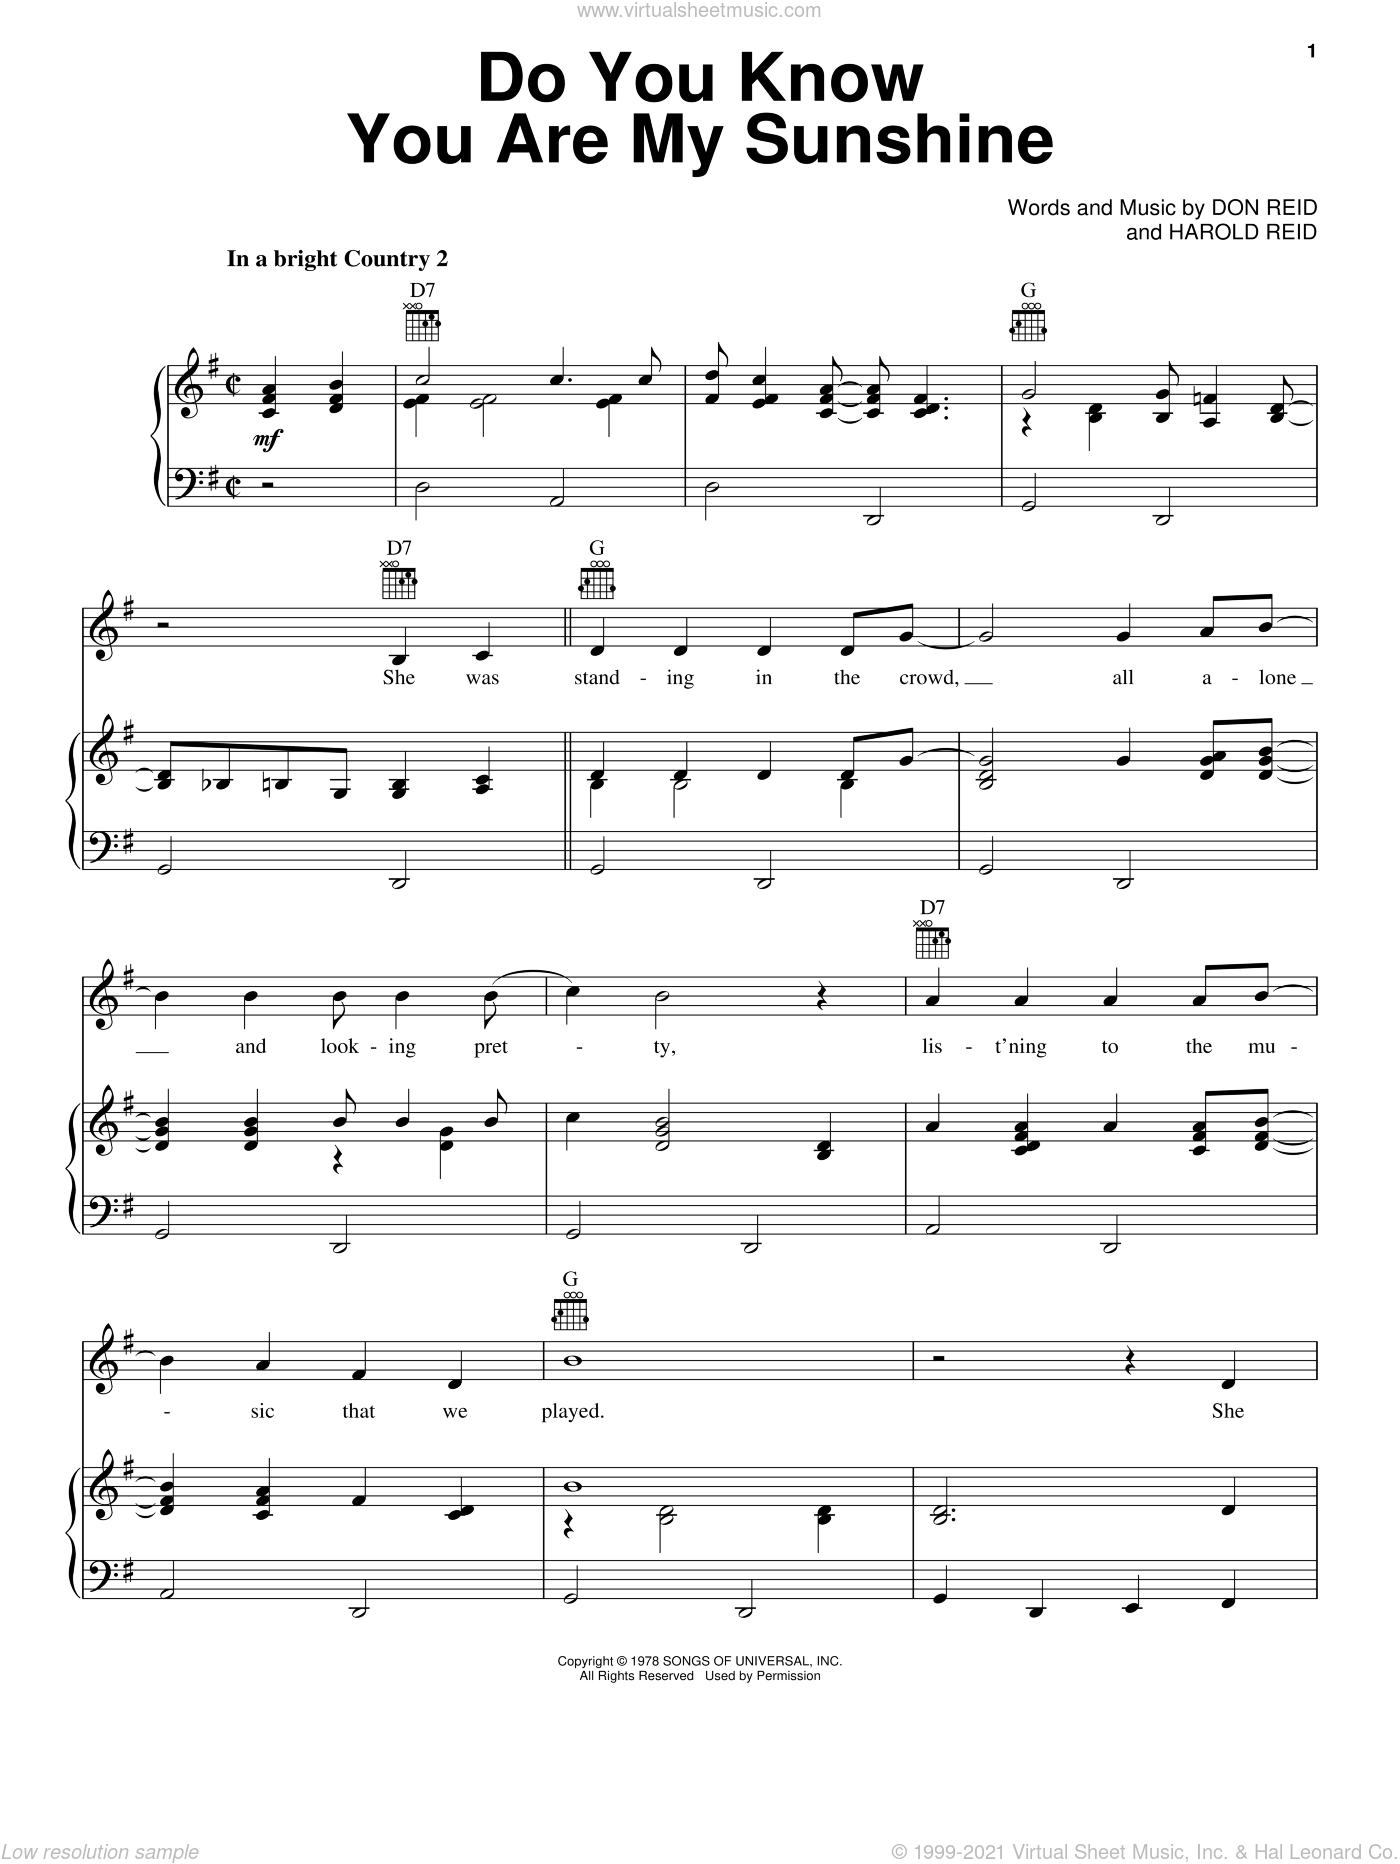 Do You Know You Are My Sunshine sheet music for voice, piano or guitar by The Statler Brothers, intermediate voice, piano or guitar. Score Image Preview.